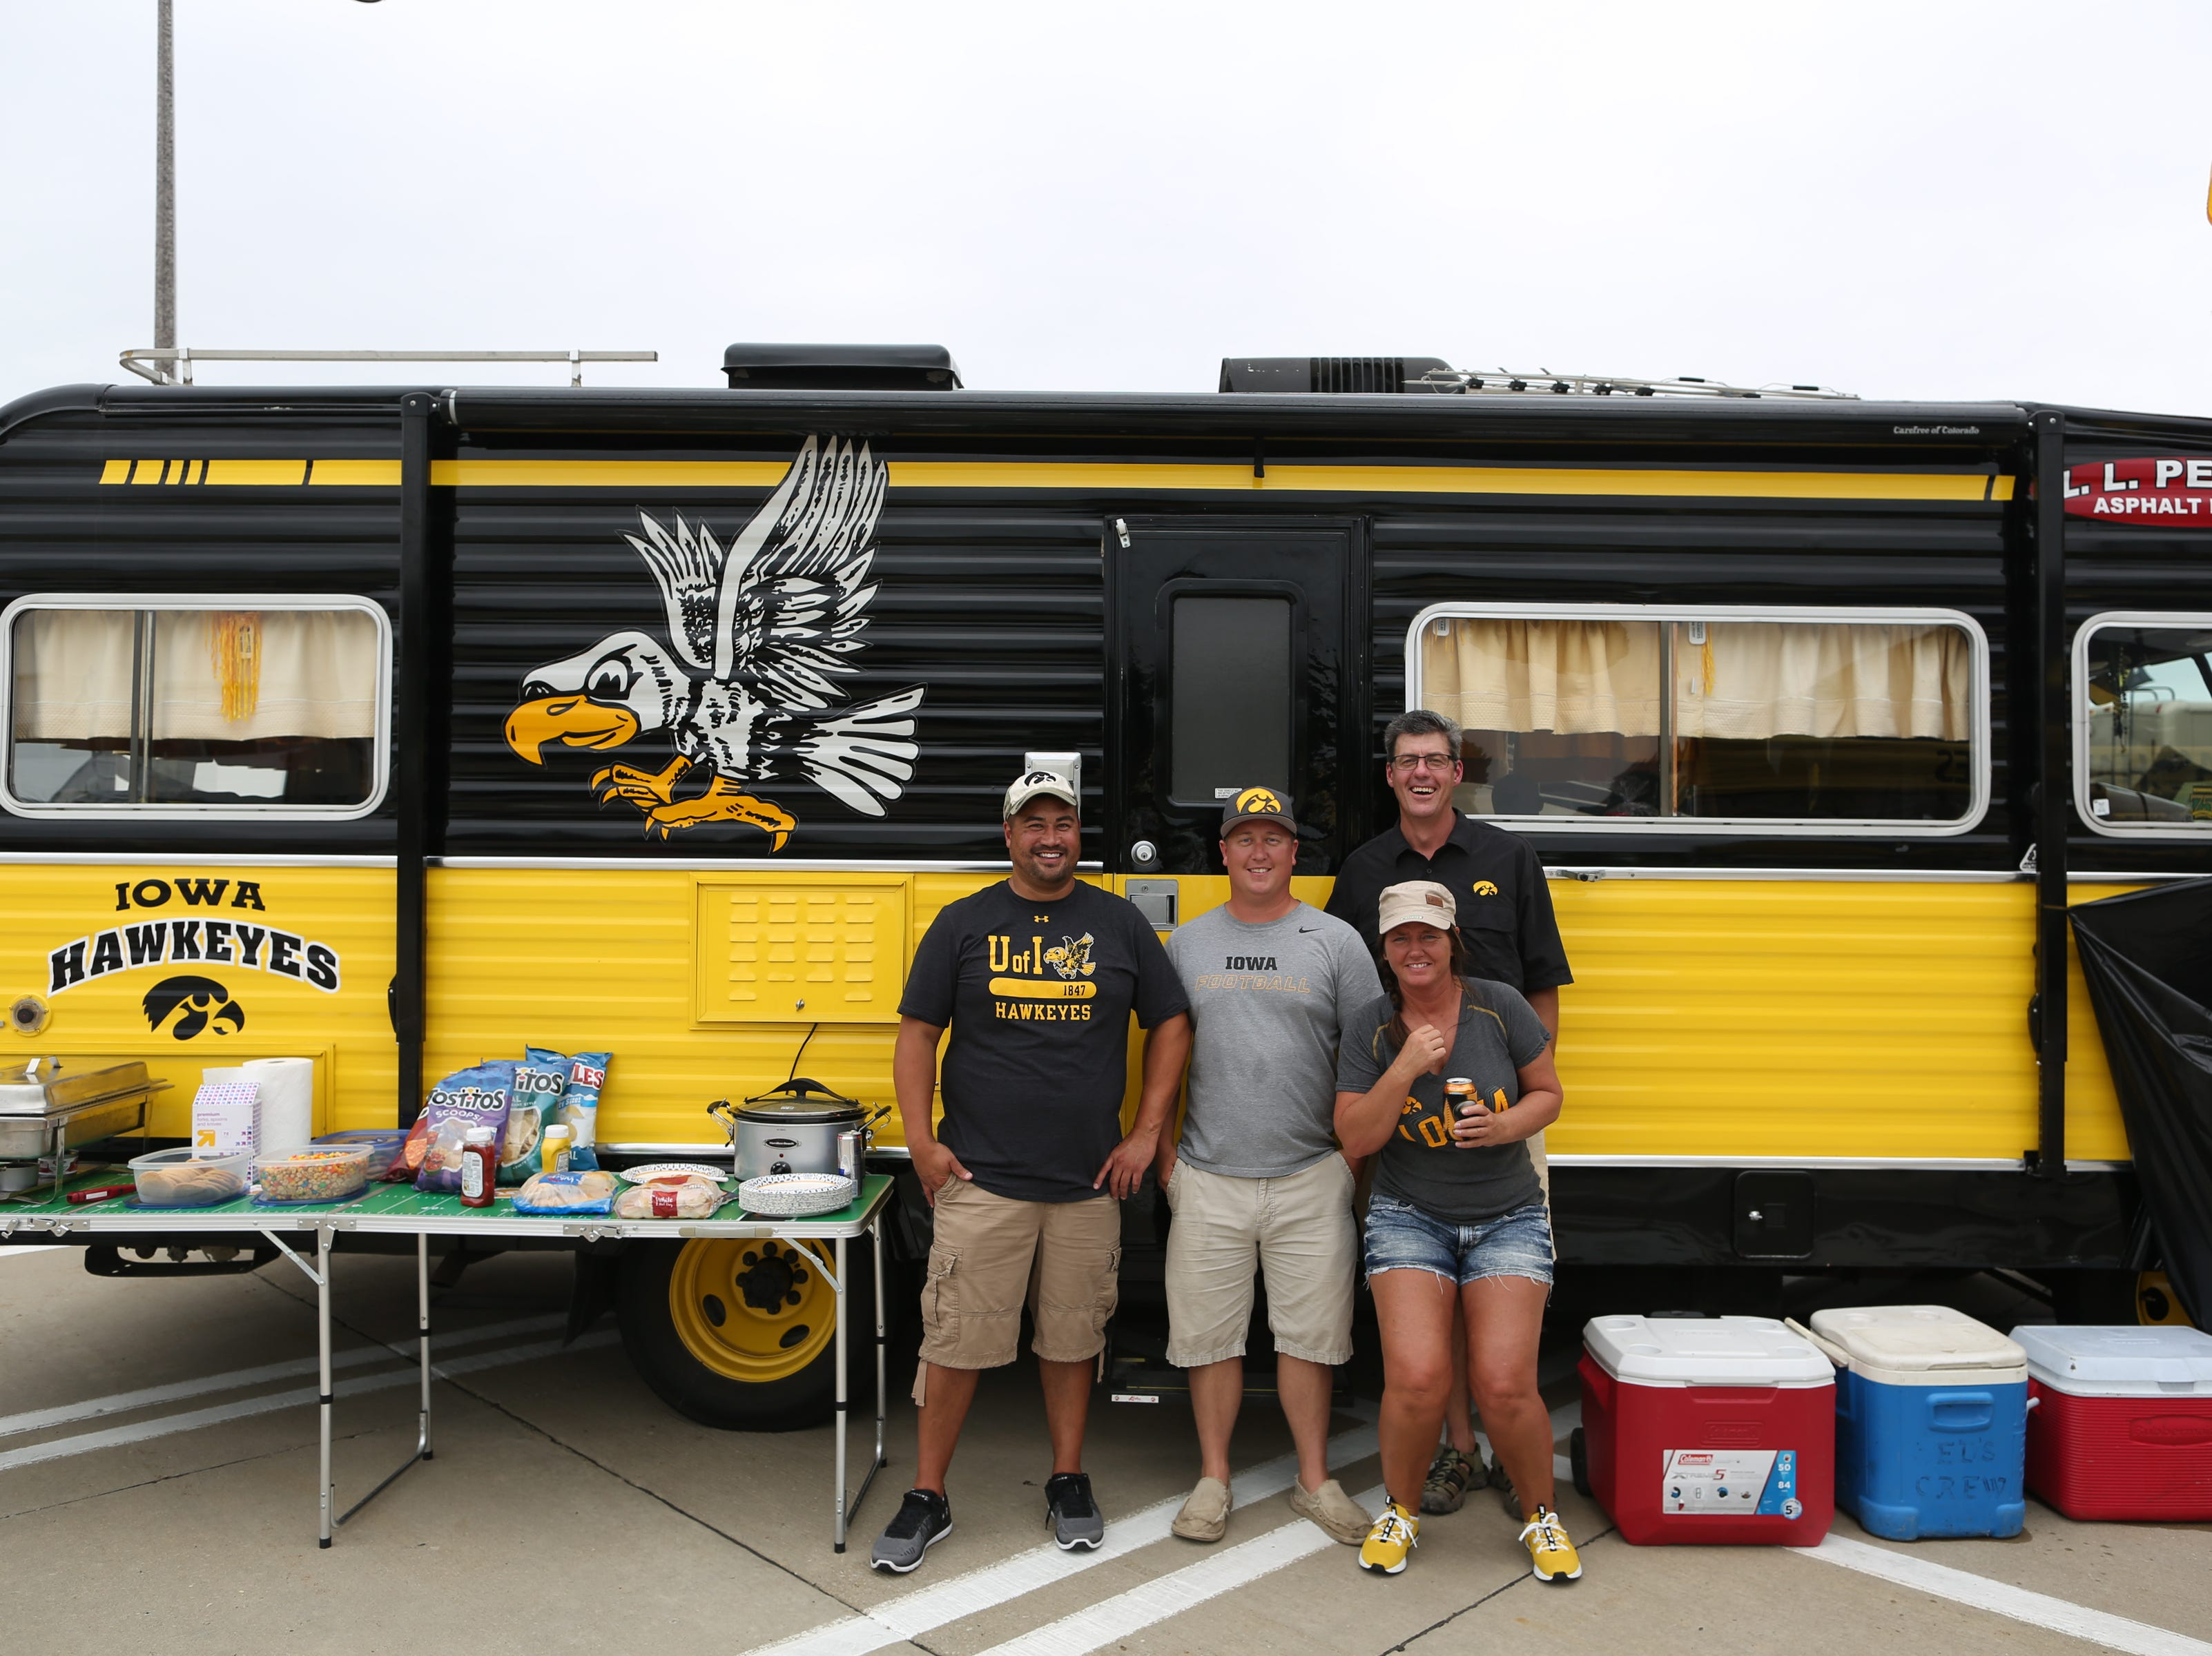 Iowa fans from North Liberty pose for a photo with their van before the Hawkeyes' game against Northern Illinois at Kinnick Stadium on Satuday, Sept. 1, 2018.